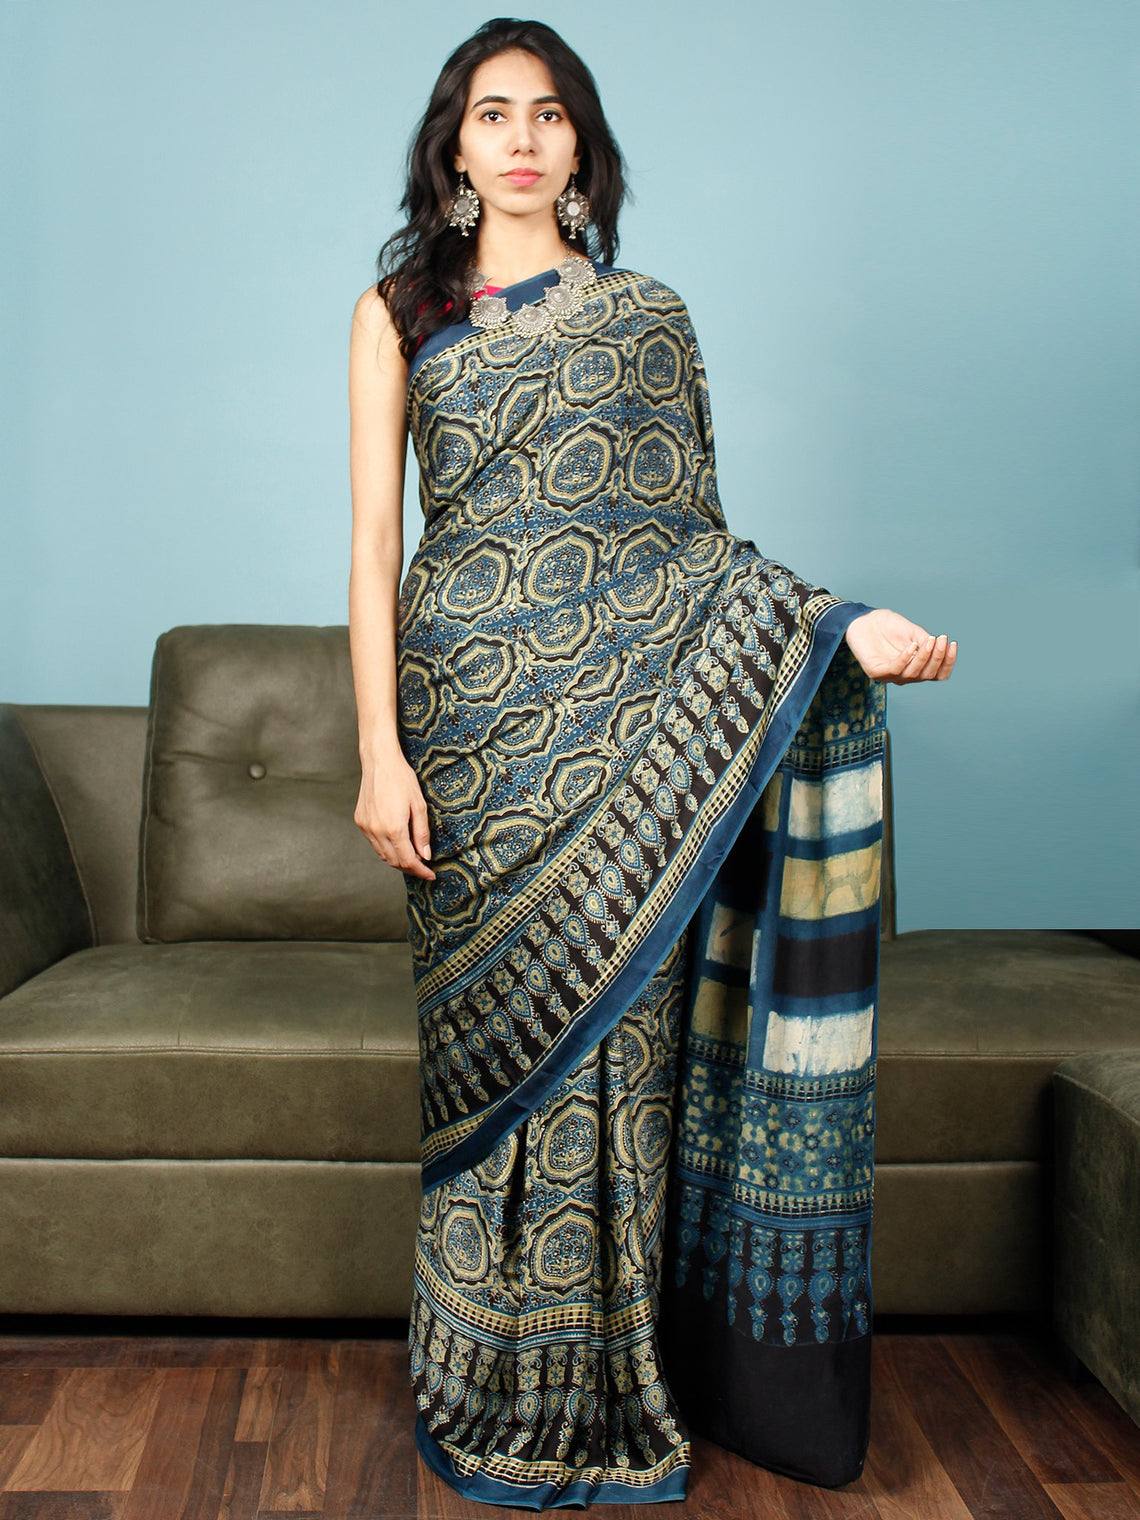 Indigo Black Fern Green Ajrakh Hand Block Printed Modal Silk Saree in Natural Colors - S031703352